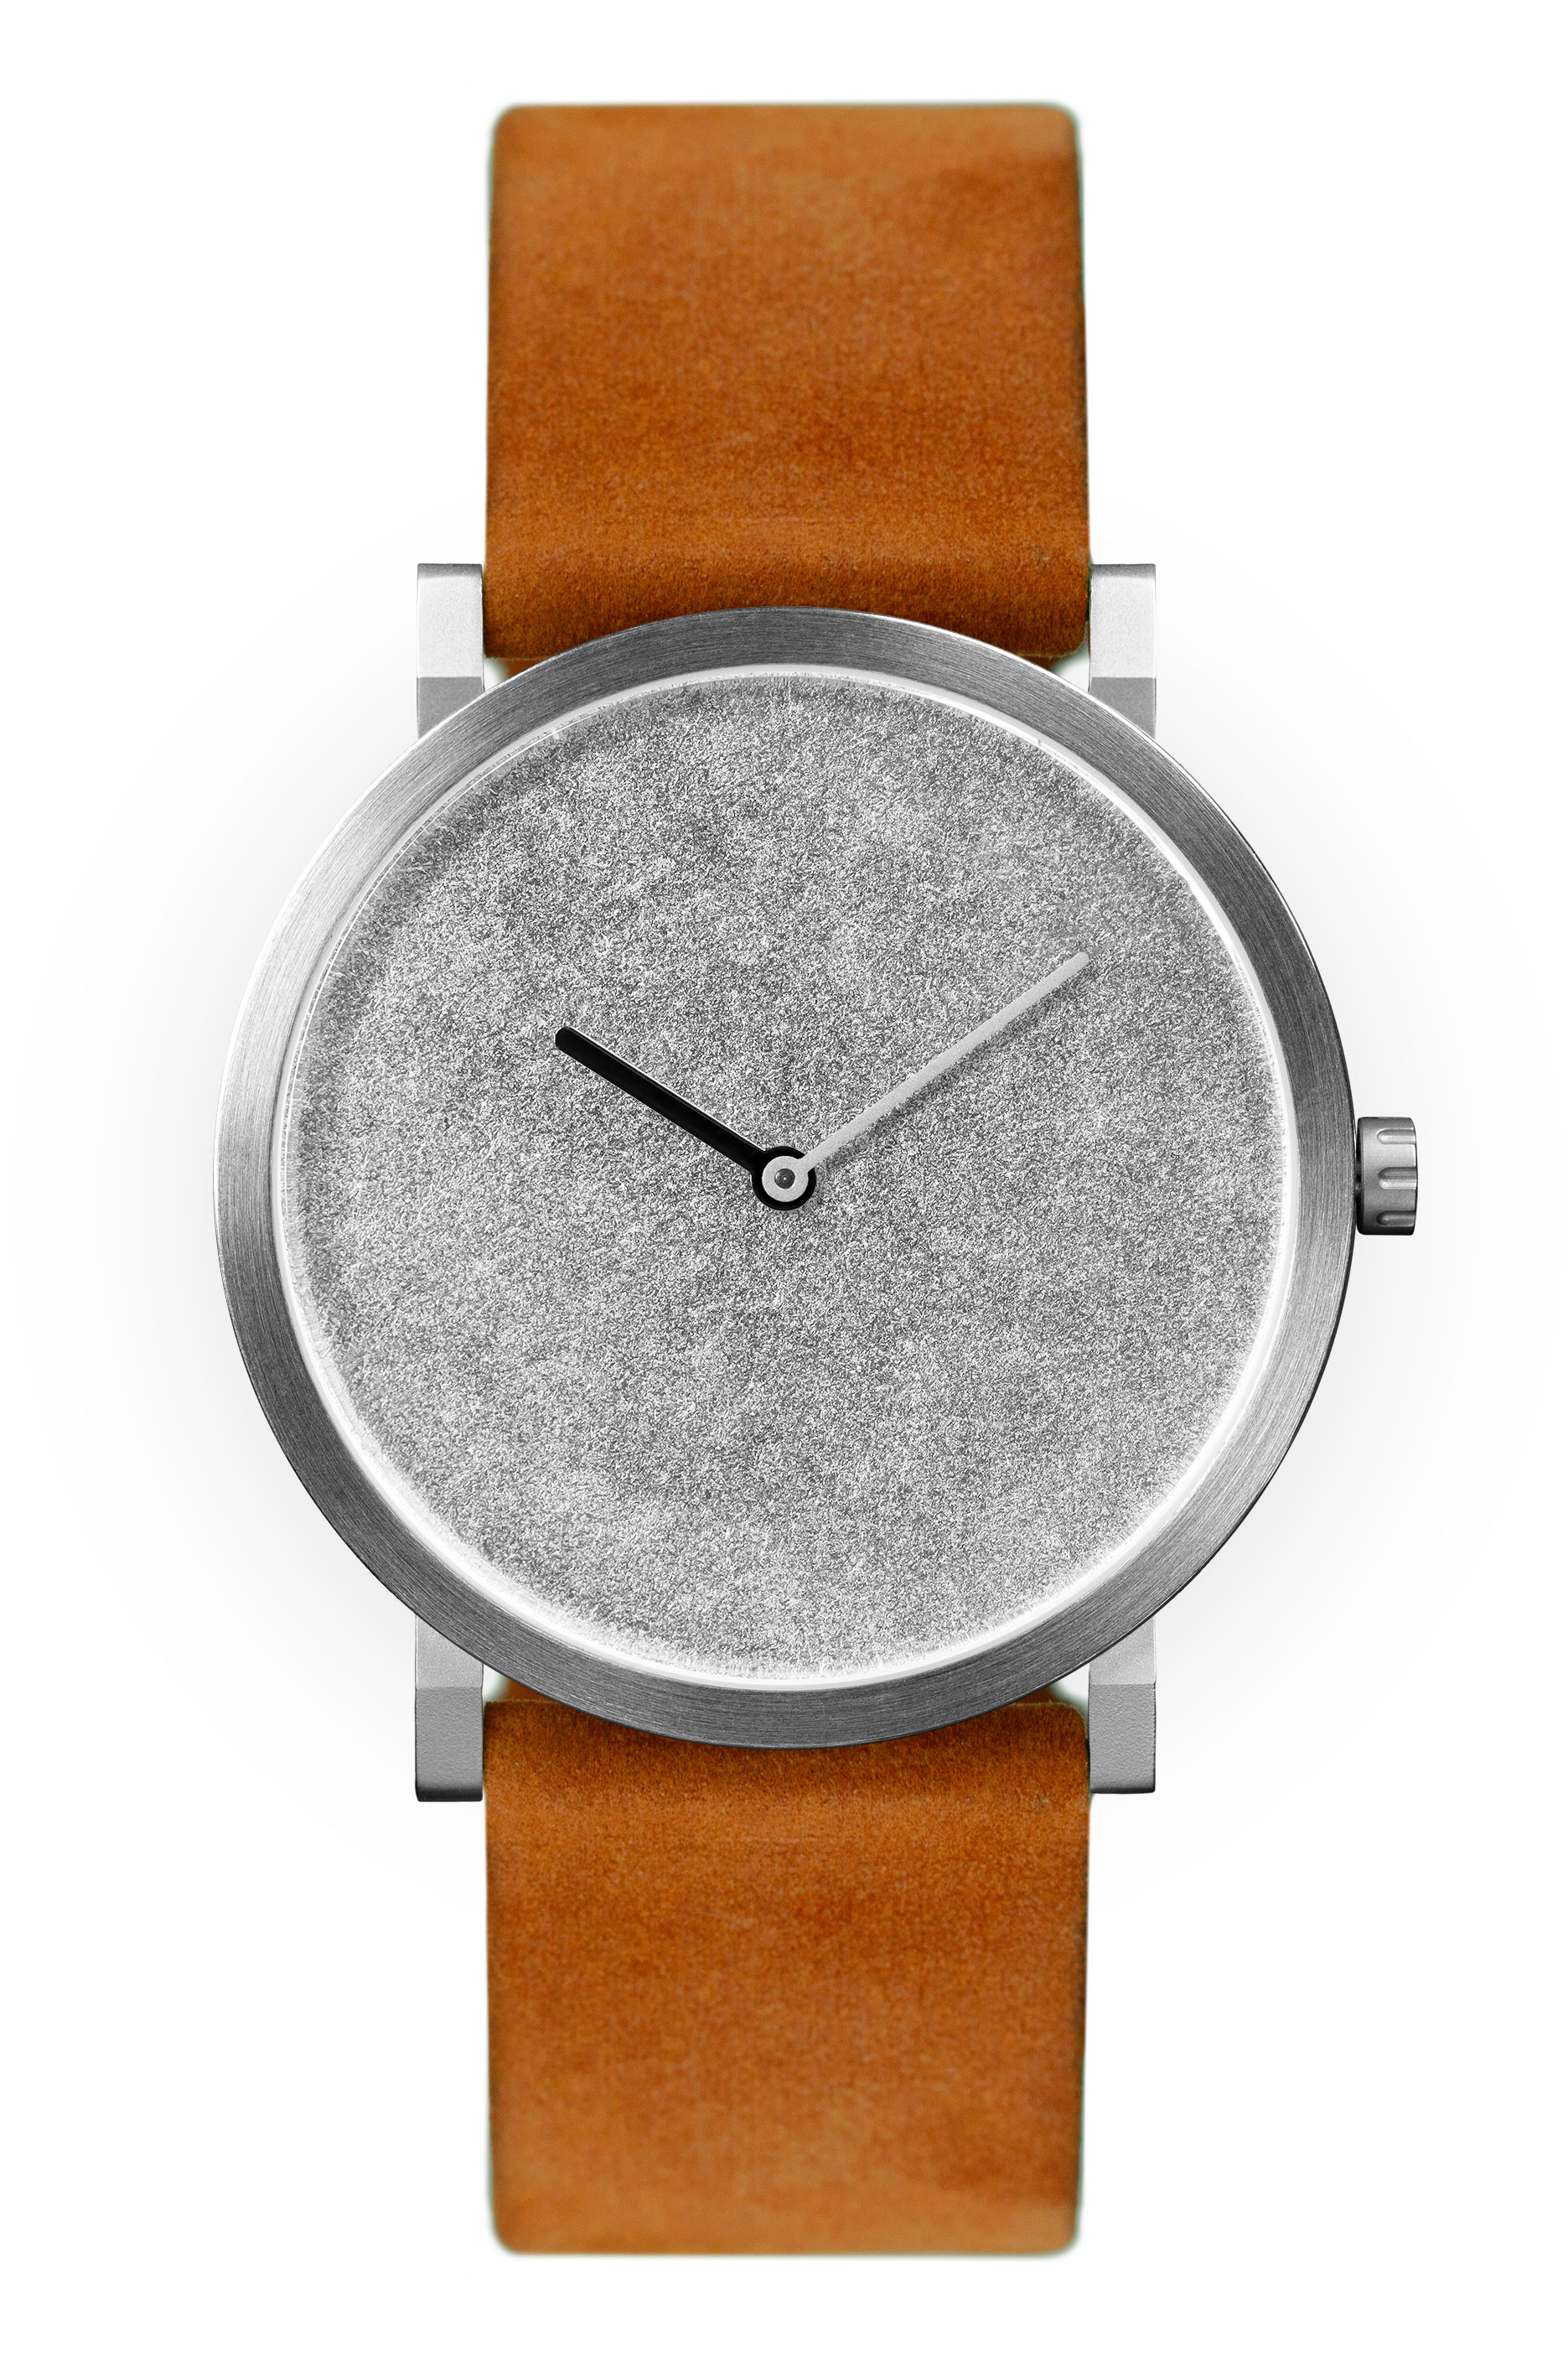 Copy of Copy of Palladium Leaf with Orange Leather Strap